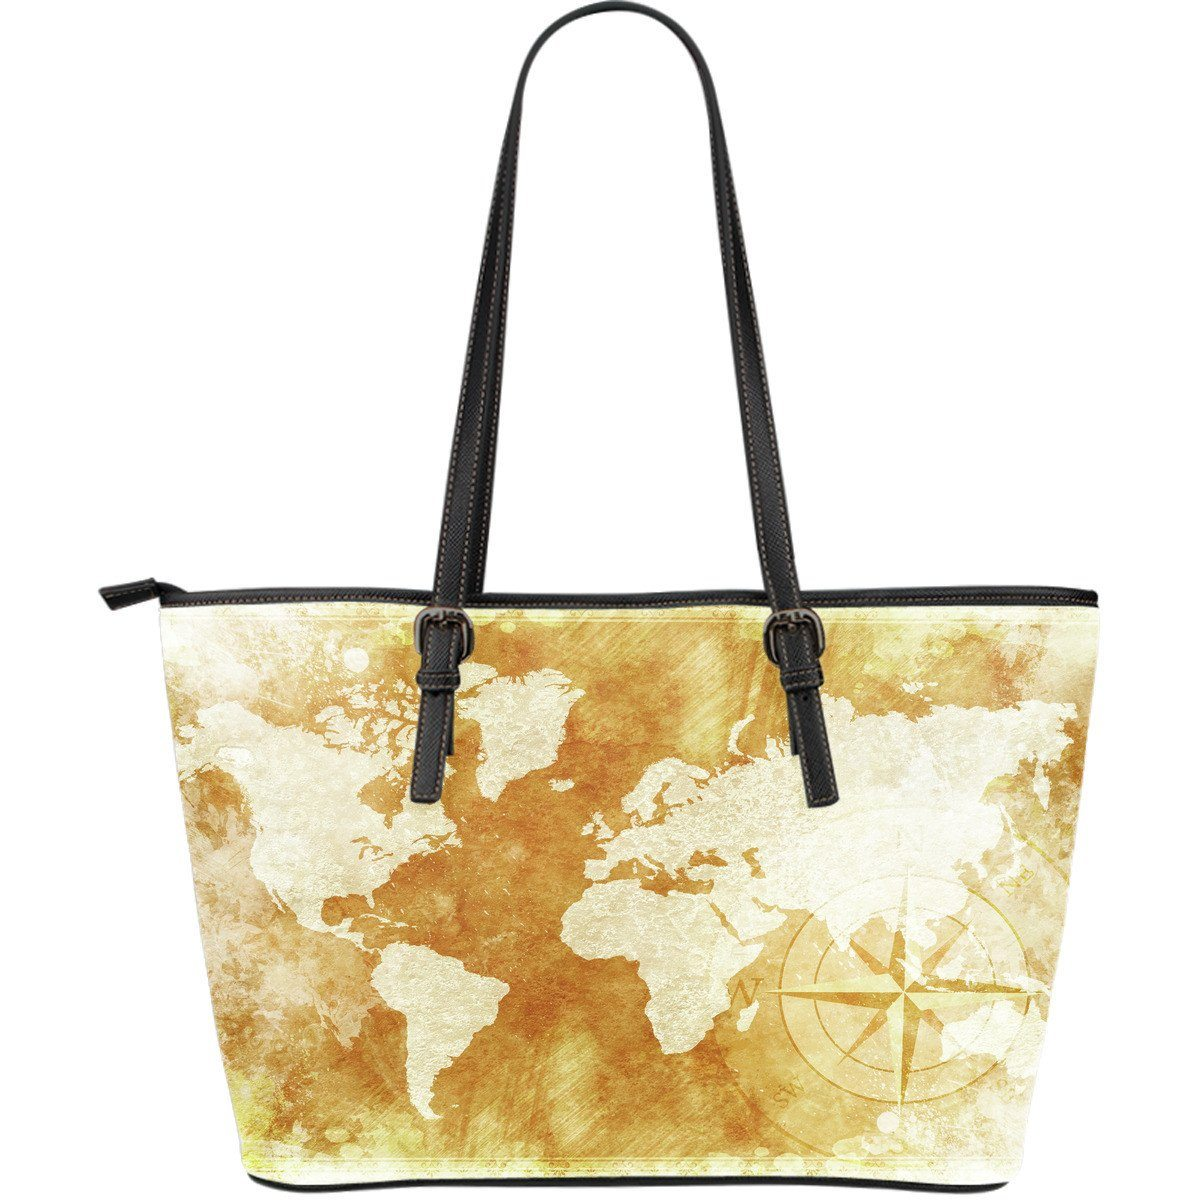 World map pu leather tote your amazing design world map pu leather tote gumiabroncs Image collections